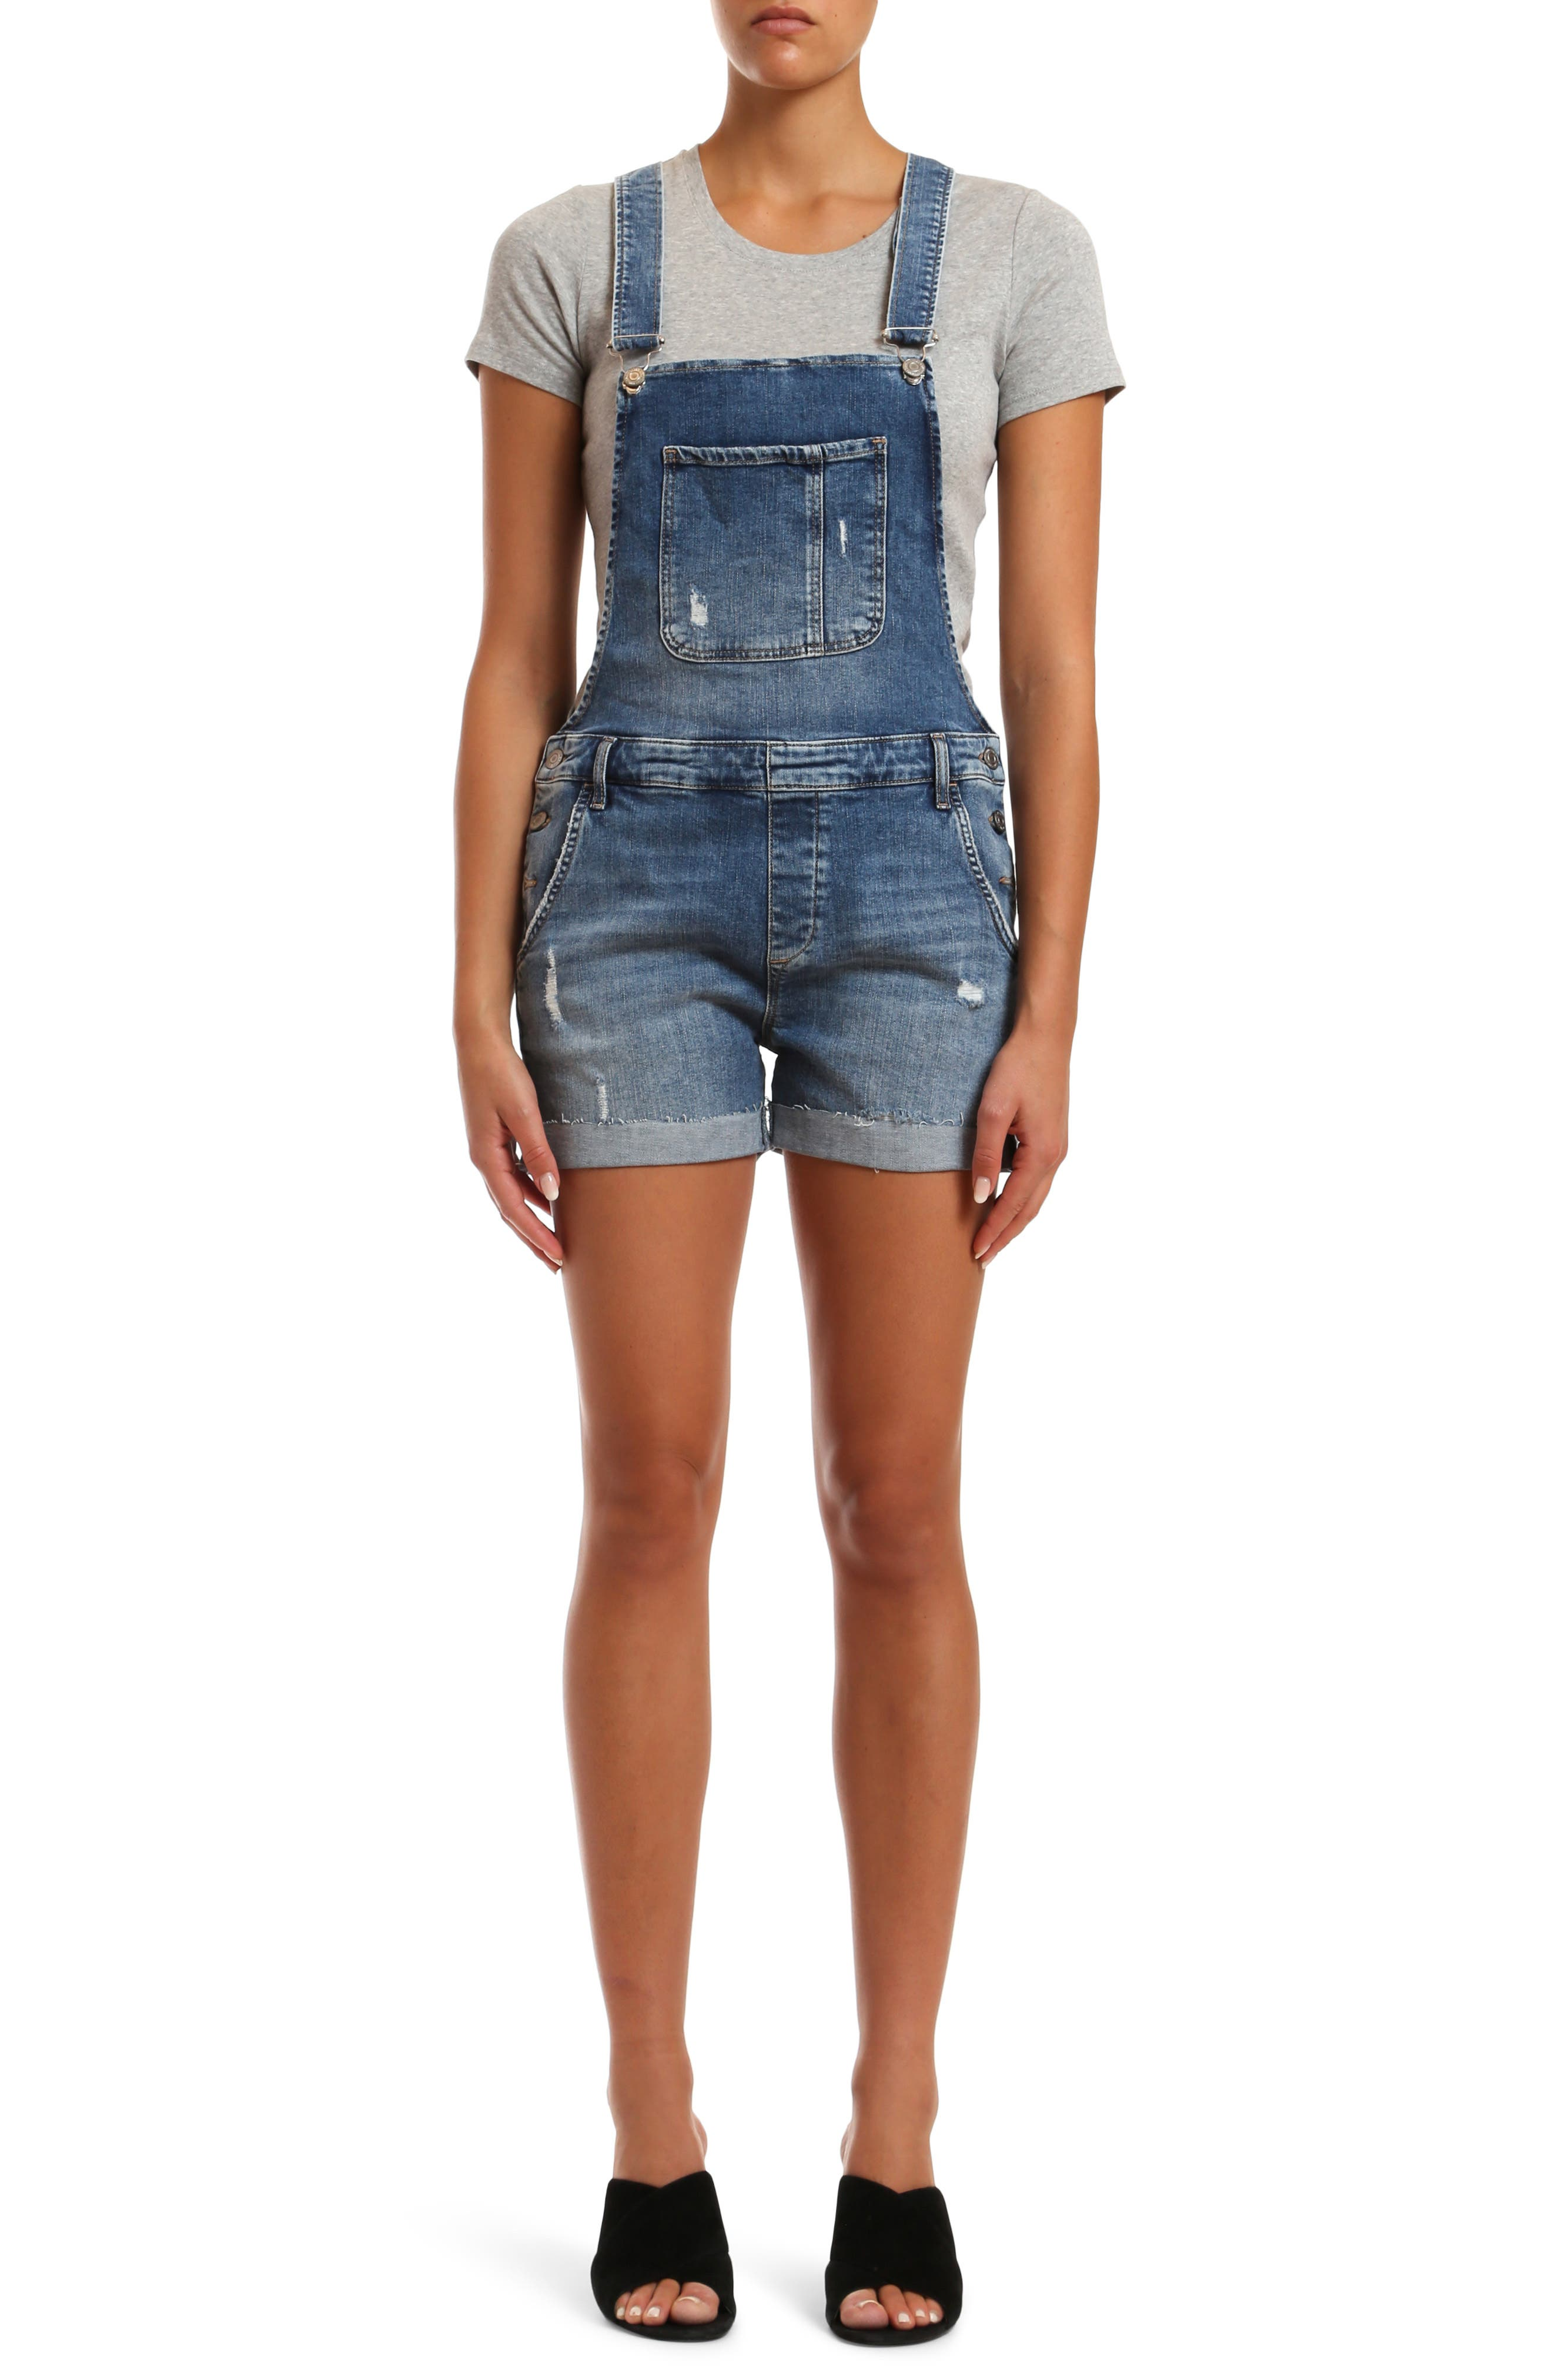 A preloved vibe authenticates these faded short overalls that are ready to own the laid-back sunny season. Style Name: Mavi Jeans Wanda Used Ripped Denim Short Overalls. Style Number: 5999169. Available in stores.